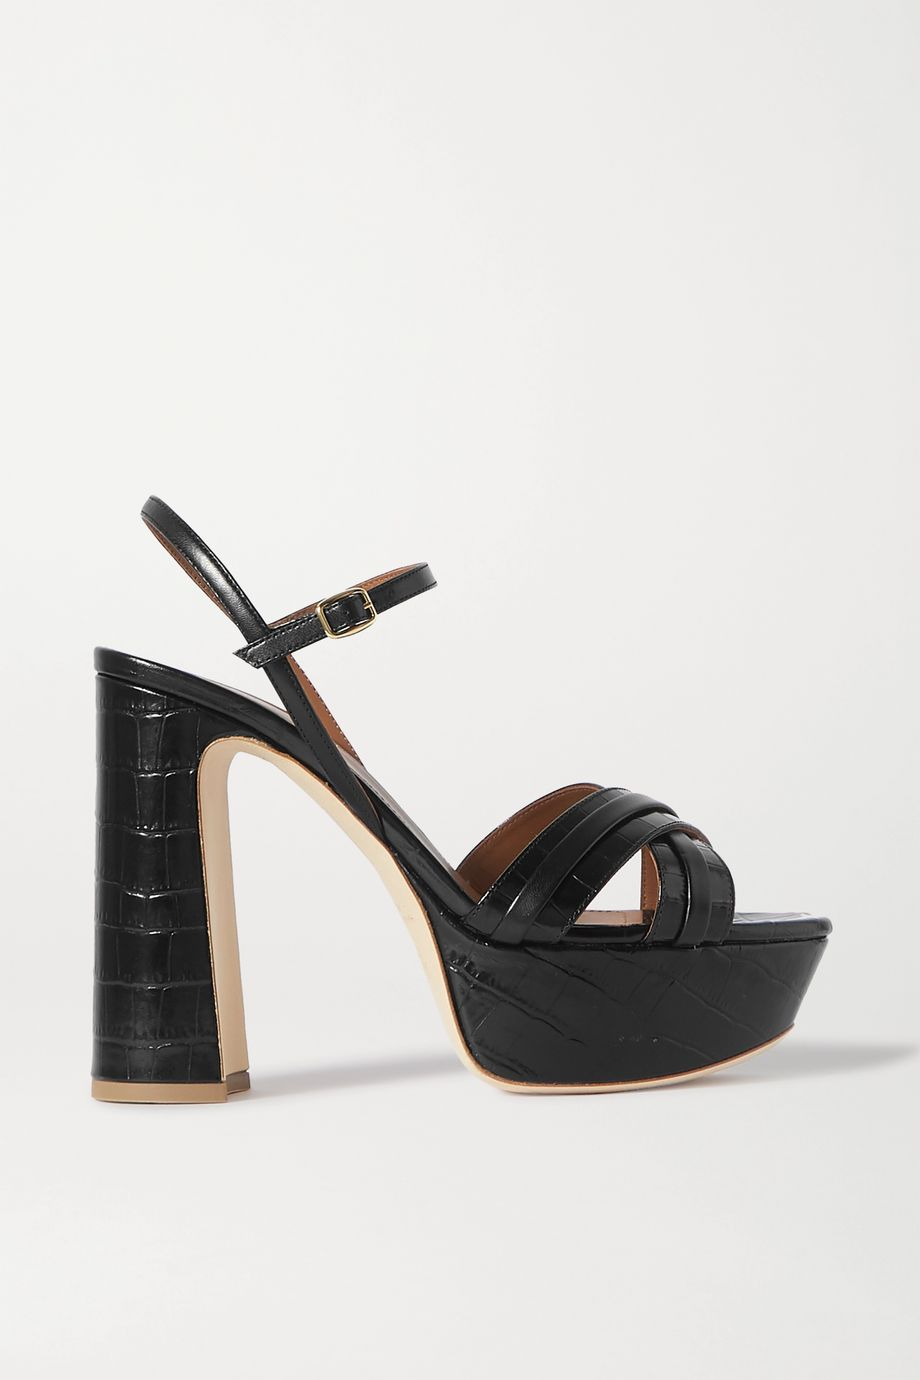 Malone Souliers Mila 125 smooth and croc-effect leather platform sandals